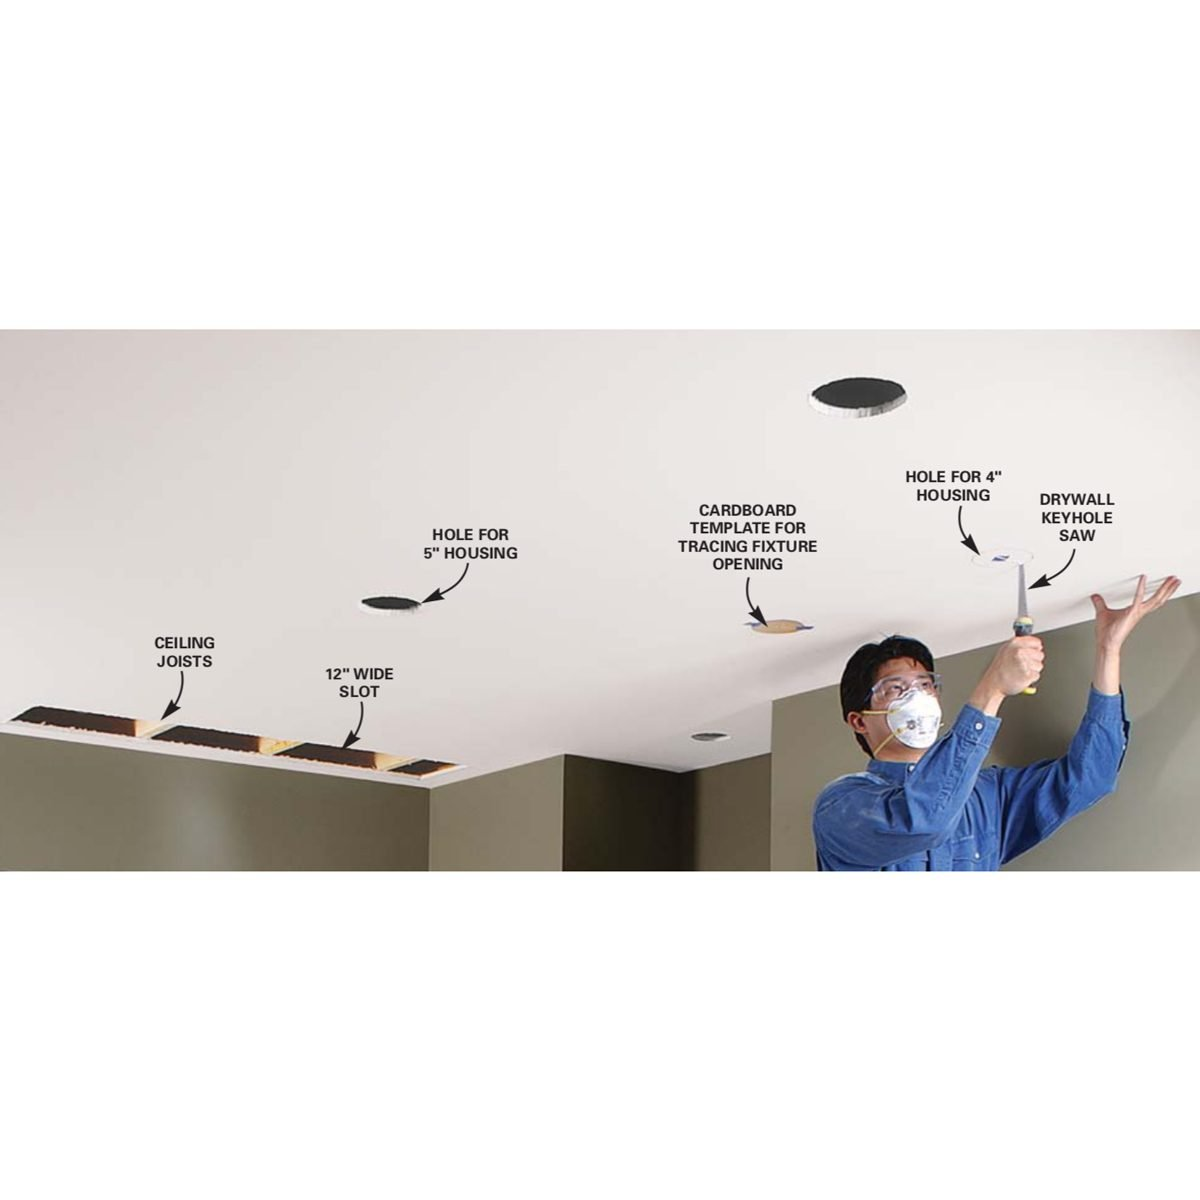 Installing Recessed Lighting: Installing Recessed Lighting For Dramatic Effect